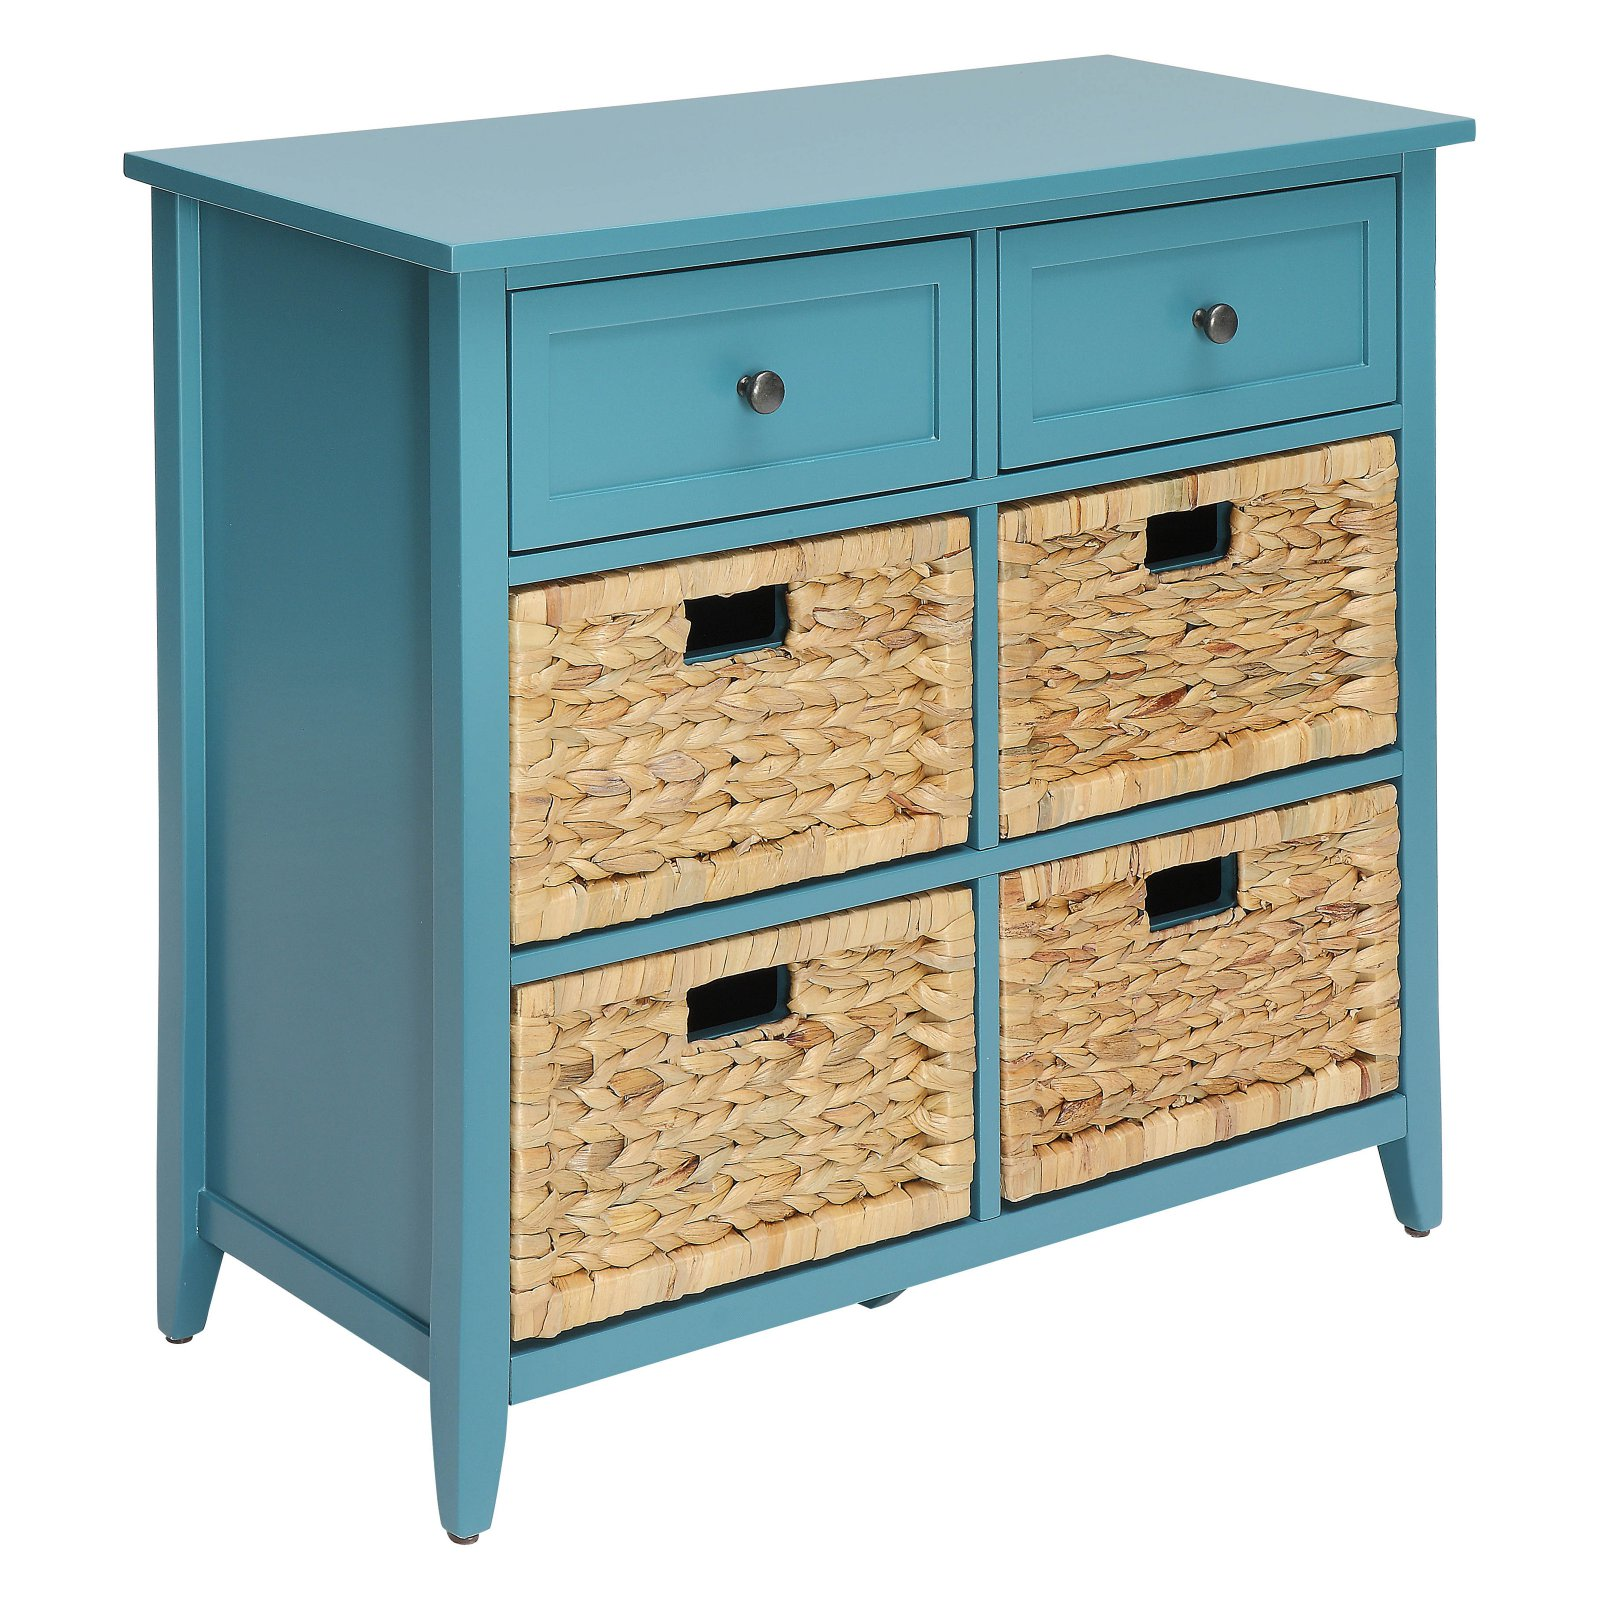 ACME Filbert Console Table, Teal